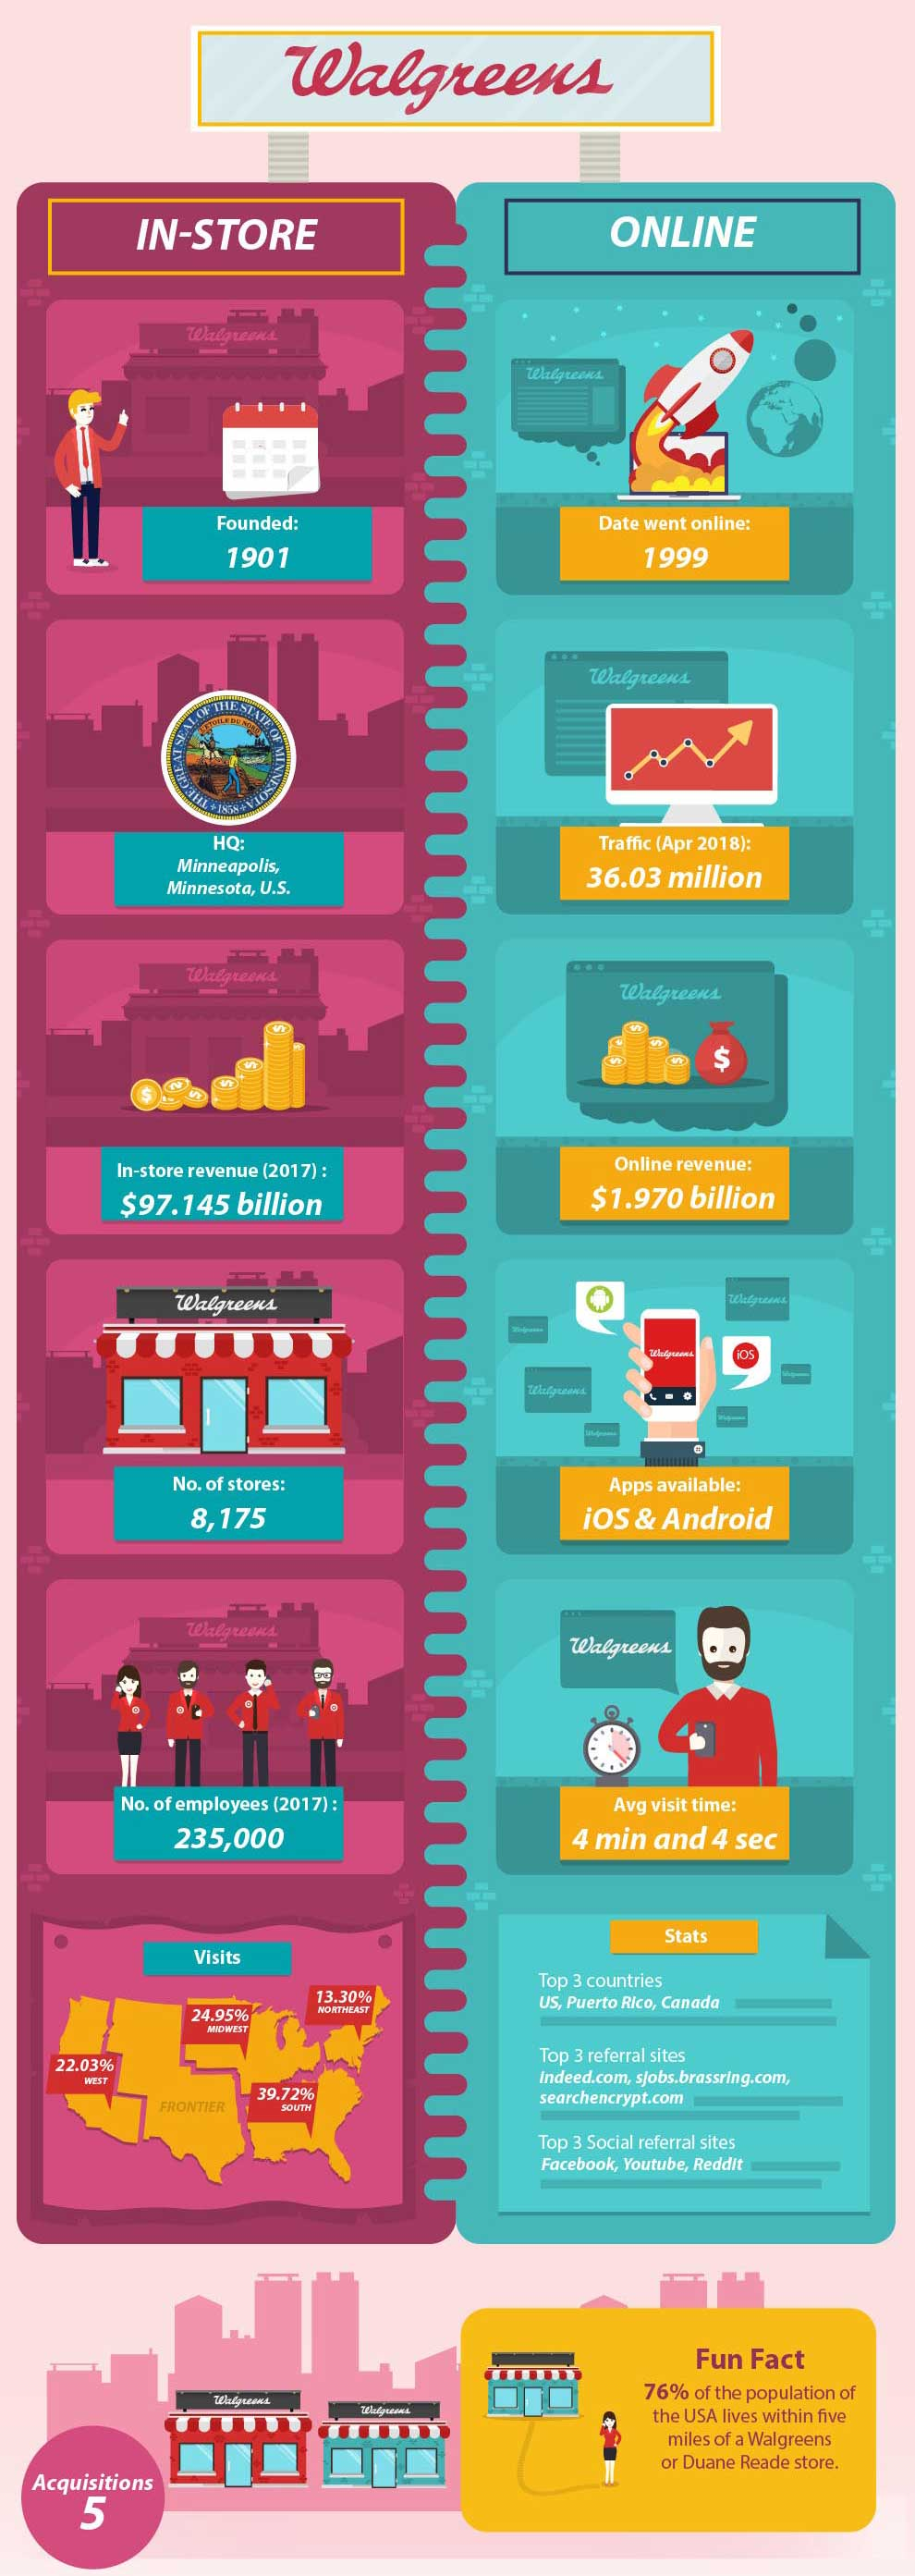 How E-commerce Compares to Regular Brick and Mortar Stores